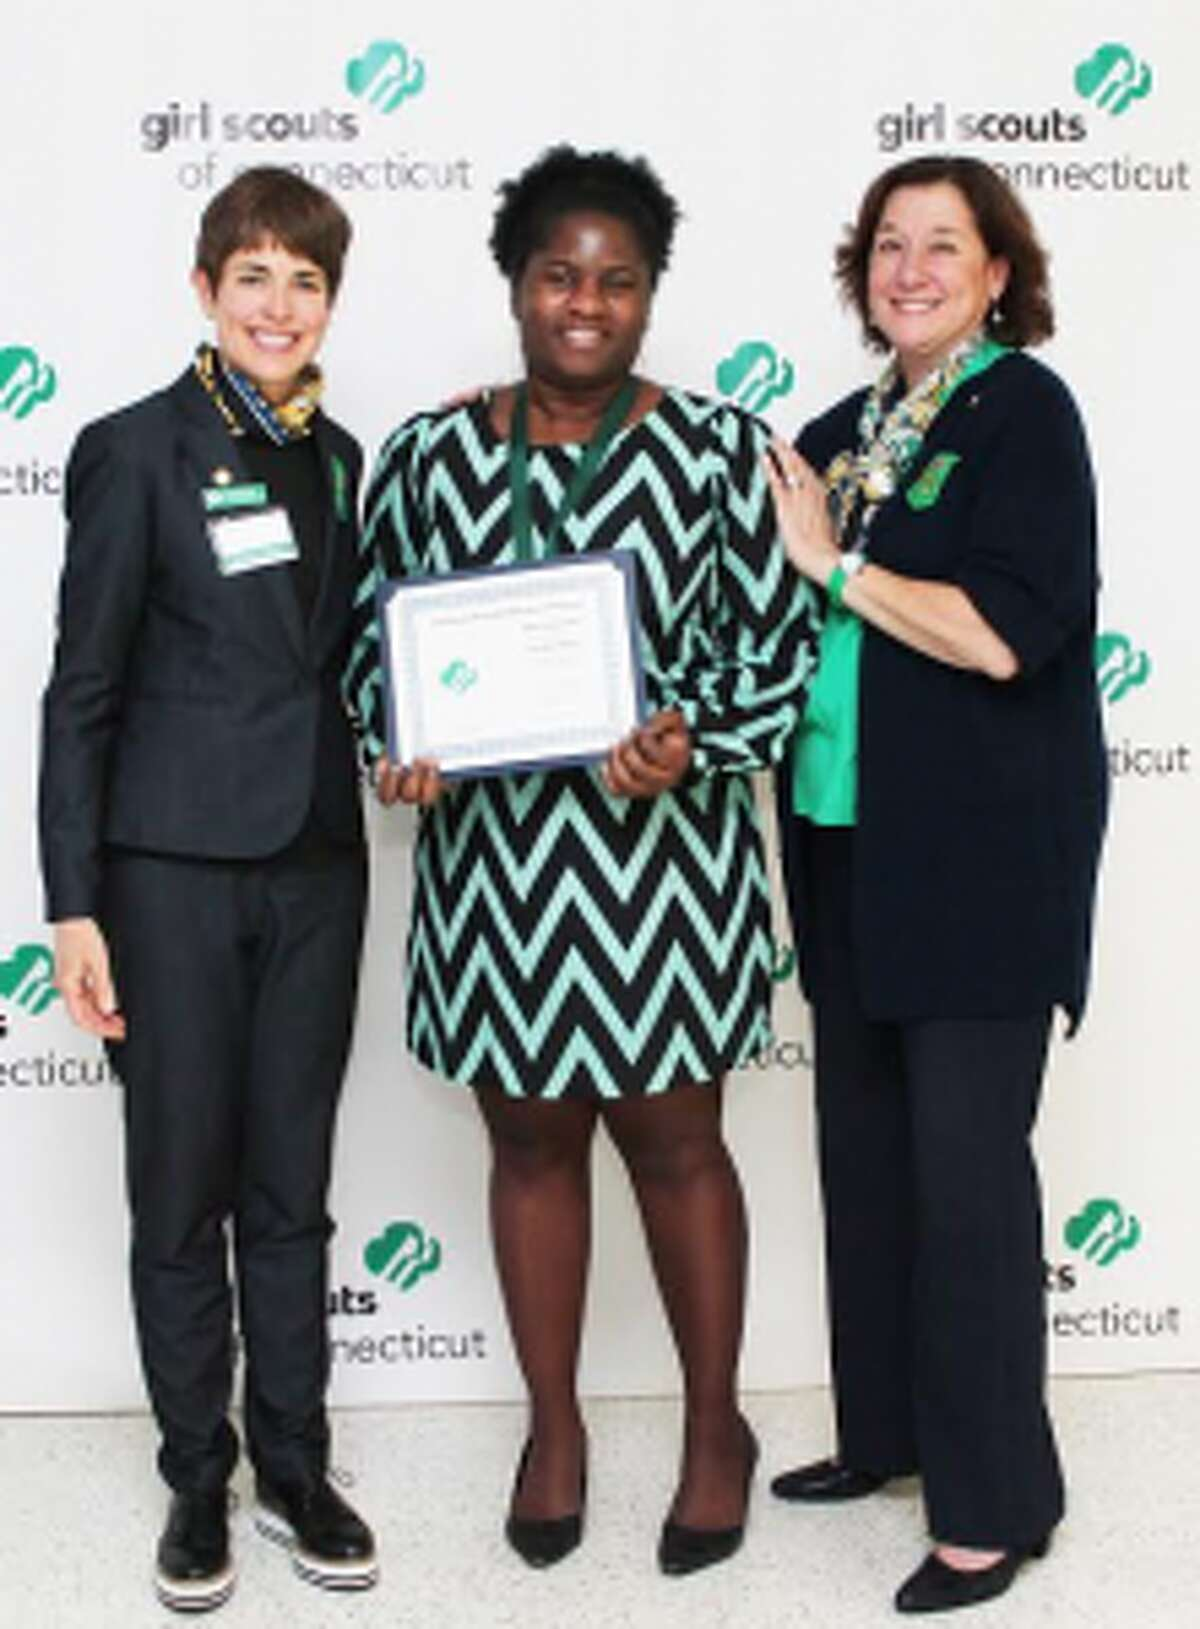 Trumbull resident Claudine Phaire, center, receives a national appreciation award from state President Trish Bowen and CEO Mary Barnaby. - Submitted